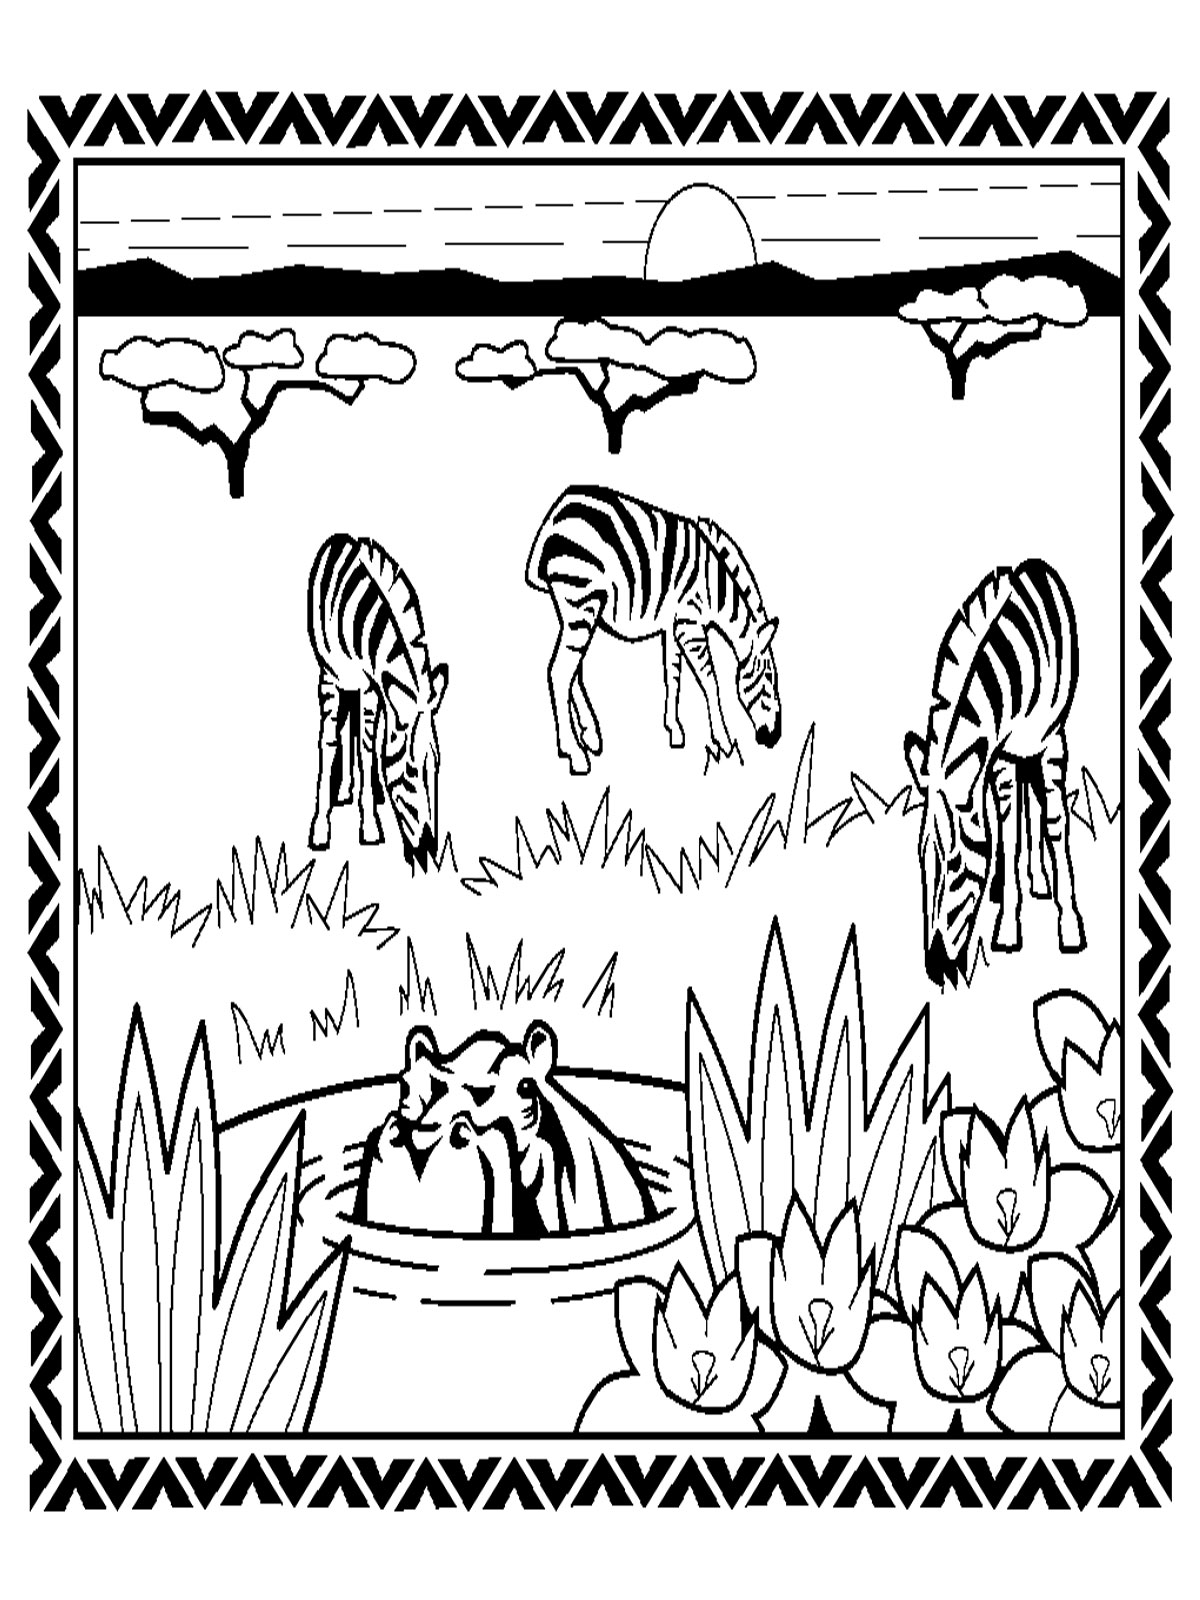 Animal Kids Coloring Pages: Zebra Coloring Pages